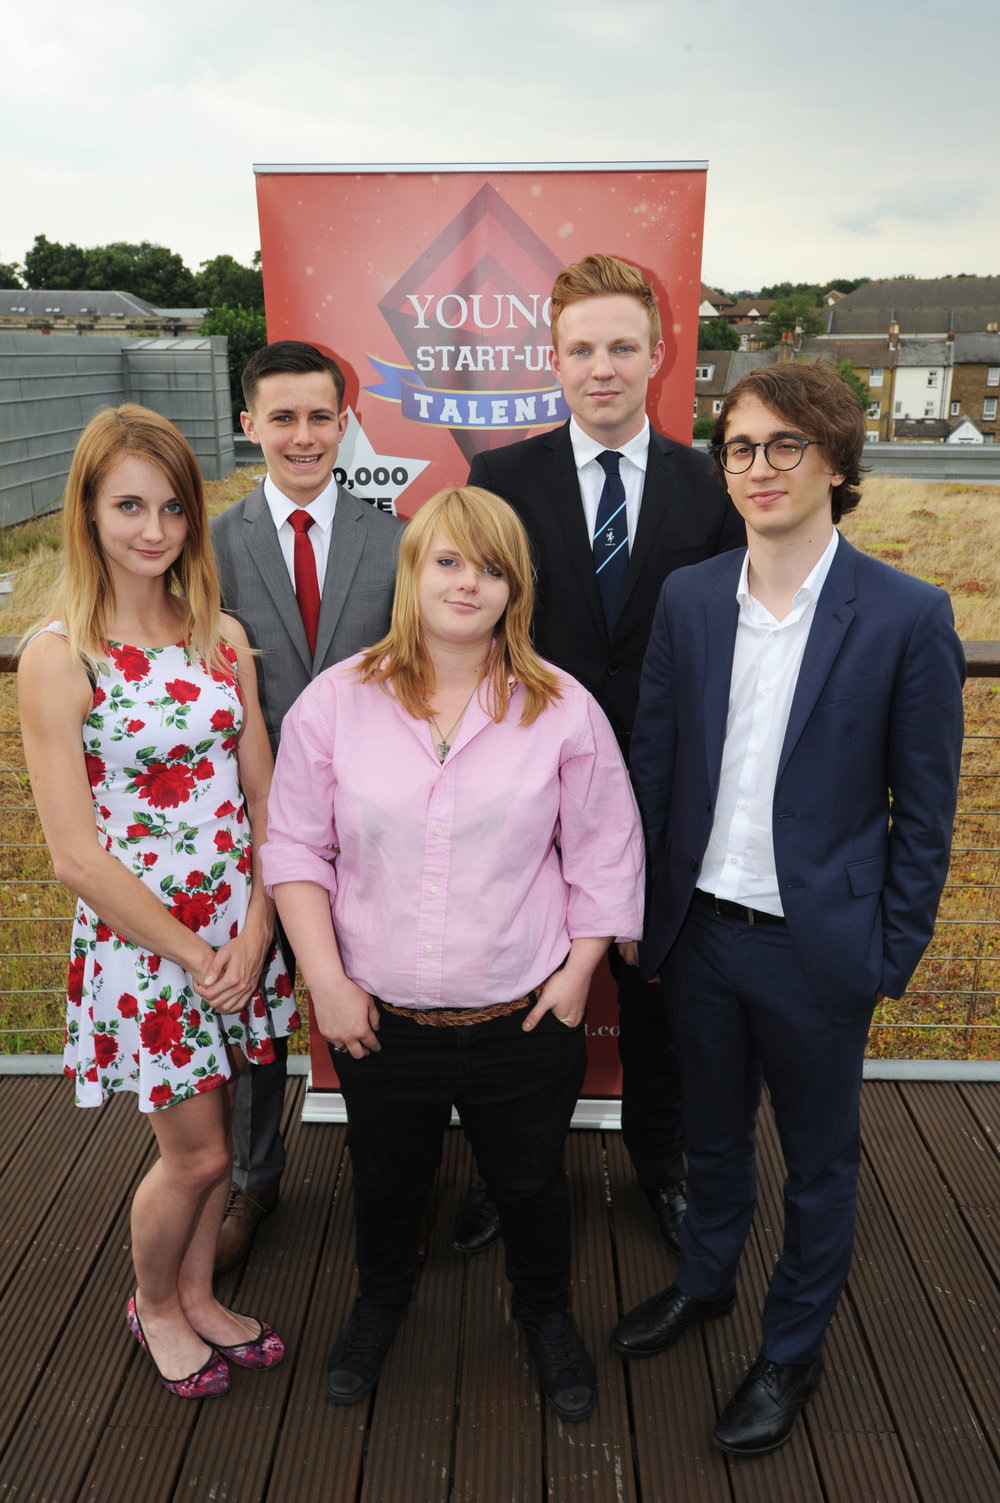 YST Kent finalists 2016 – Left to Right Kelly Culver, Jonathan Wood, Serena Christie, Ben Jeffries, Edoardo Abati